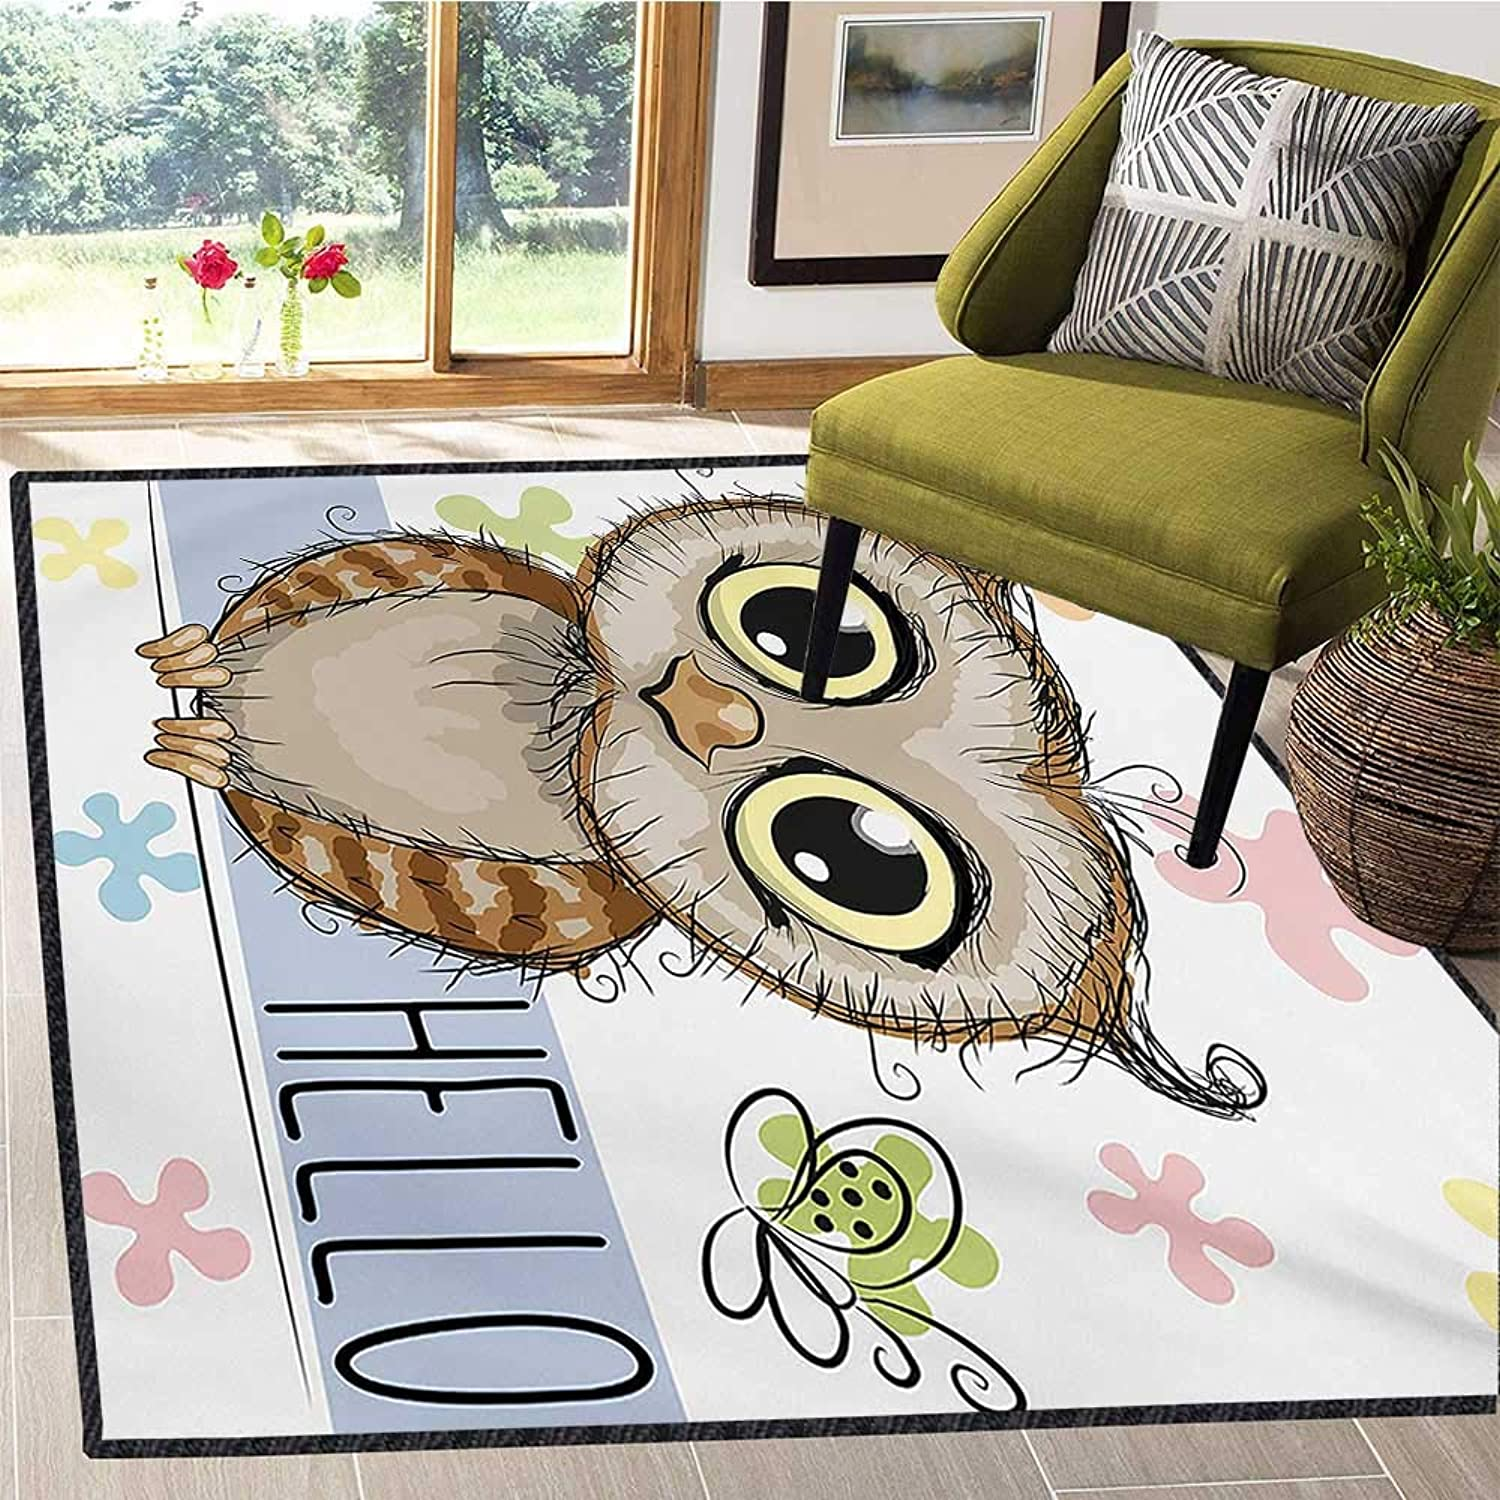 Owls, Floor Mat for Kids, Cartoon Owl and a Butterfly on a Floral Background with Hello Message Illustration, Door Mats for Inside Non Slip Backing 6x8 Ft Multicolor